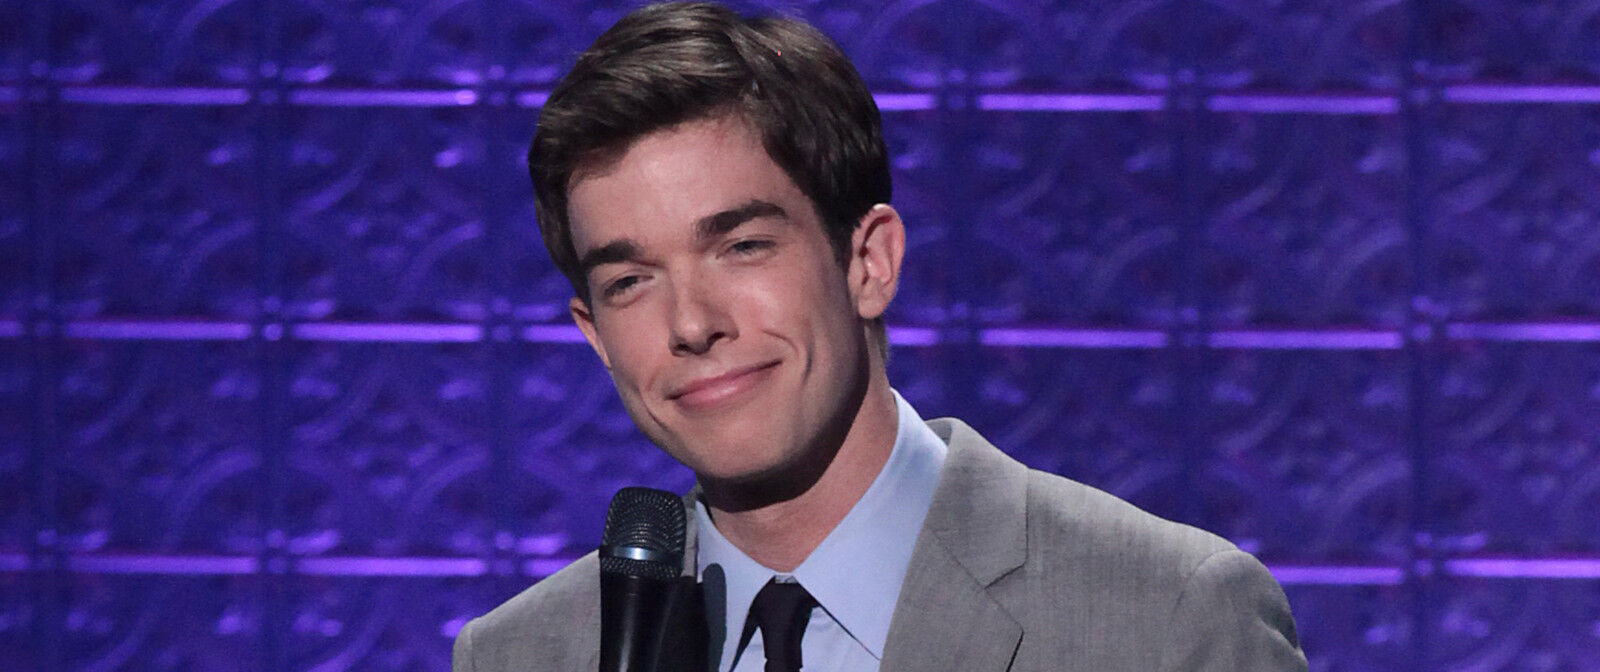 John Mulaney Tickets (Rescheduled from April 21)